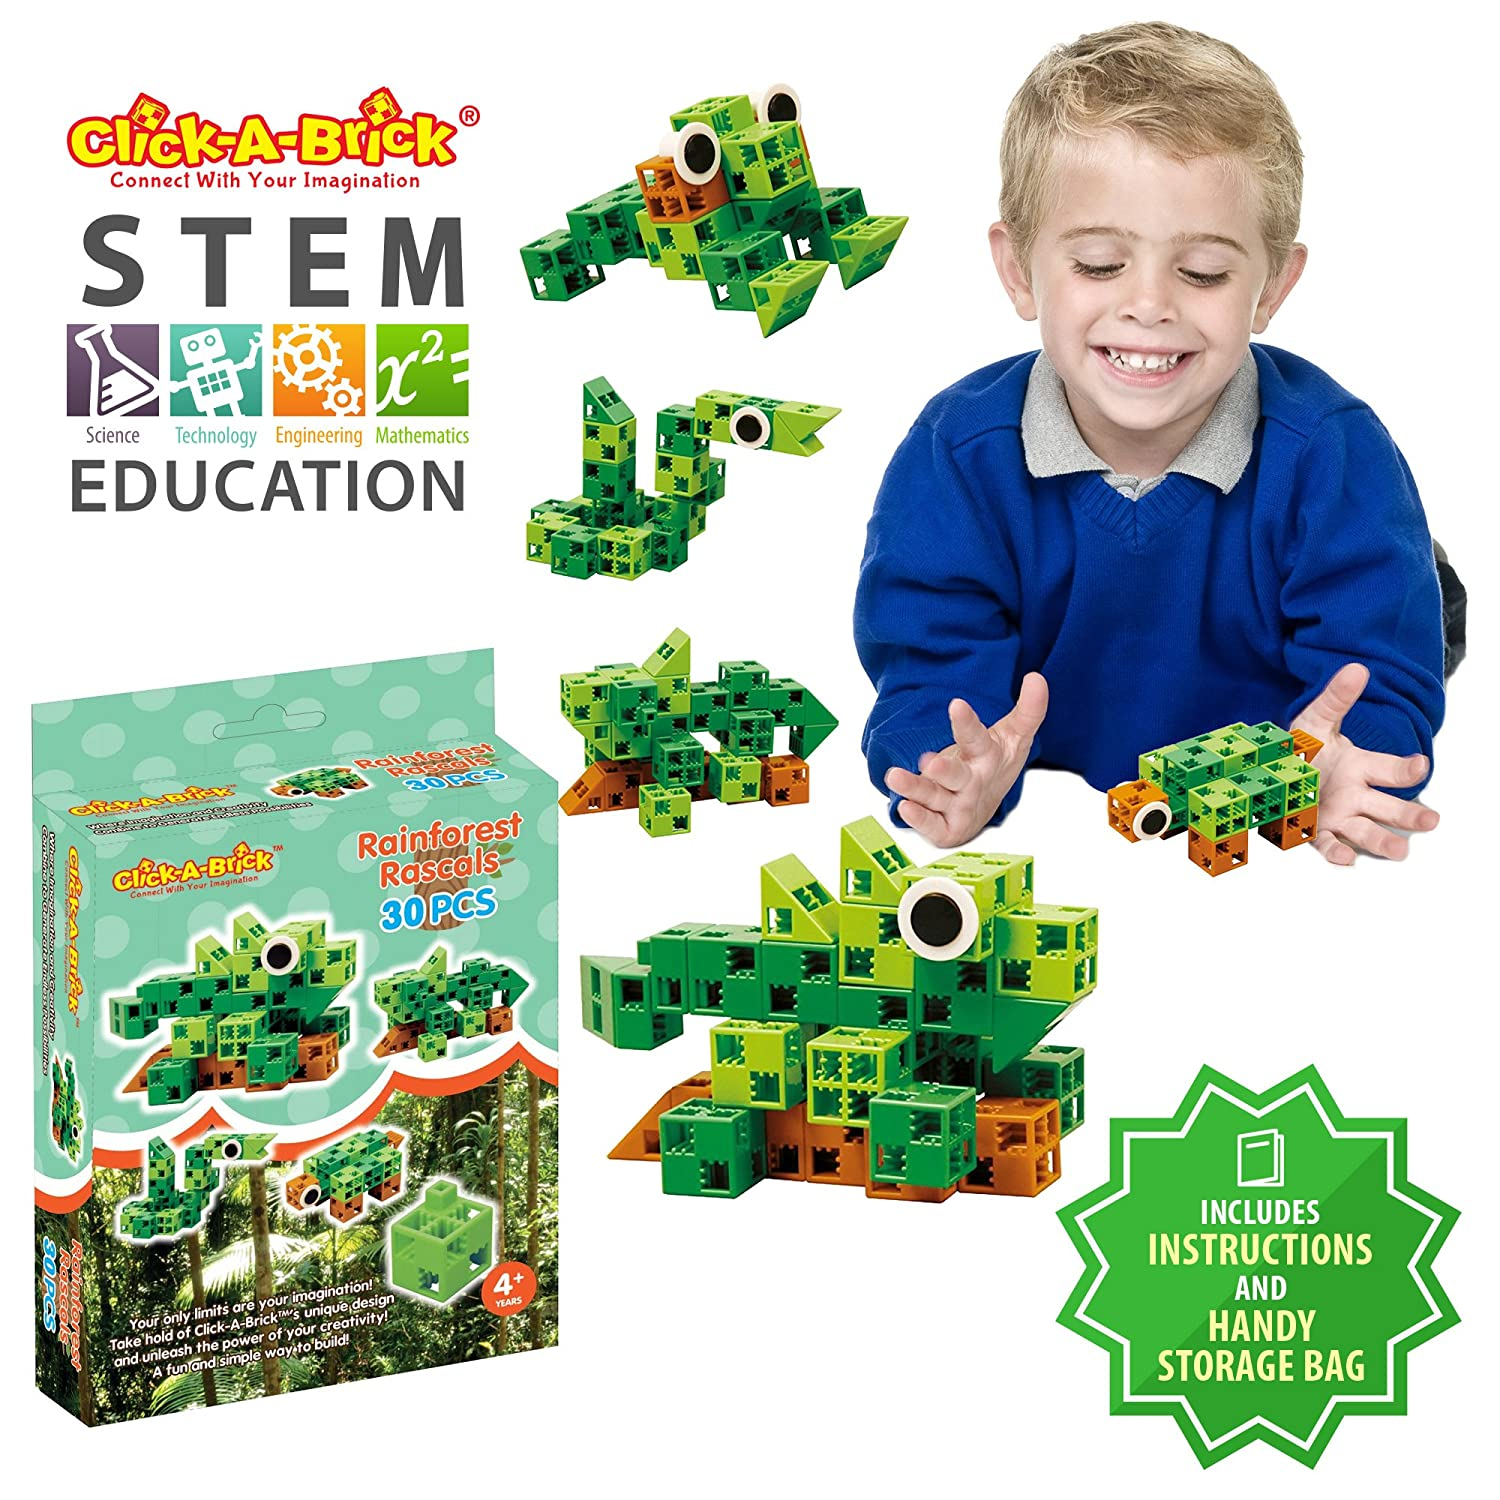 Click-A-Brick Rainforest Rascals 30pc Building Blocks Set   Best STEM Toys for Boys & Girls Age 4 5 6 Year Old   Kids 3D Creative Puzzle Fun   Top Educational Learning Gift For Children Ages 4 - 12 Review